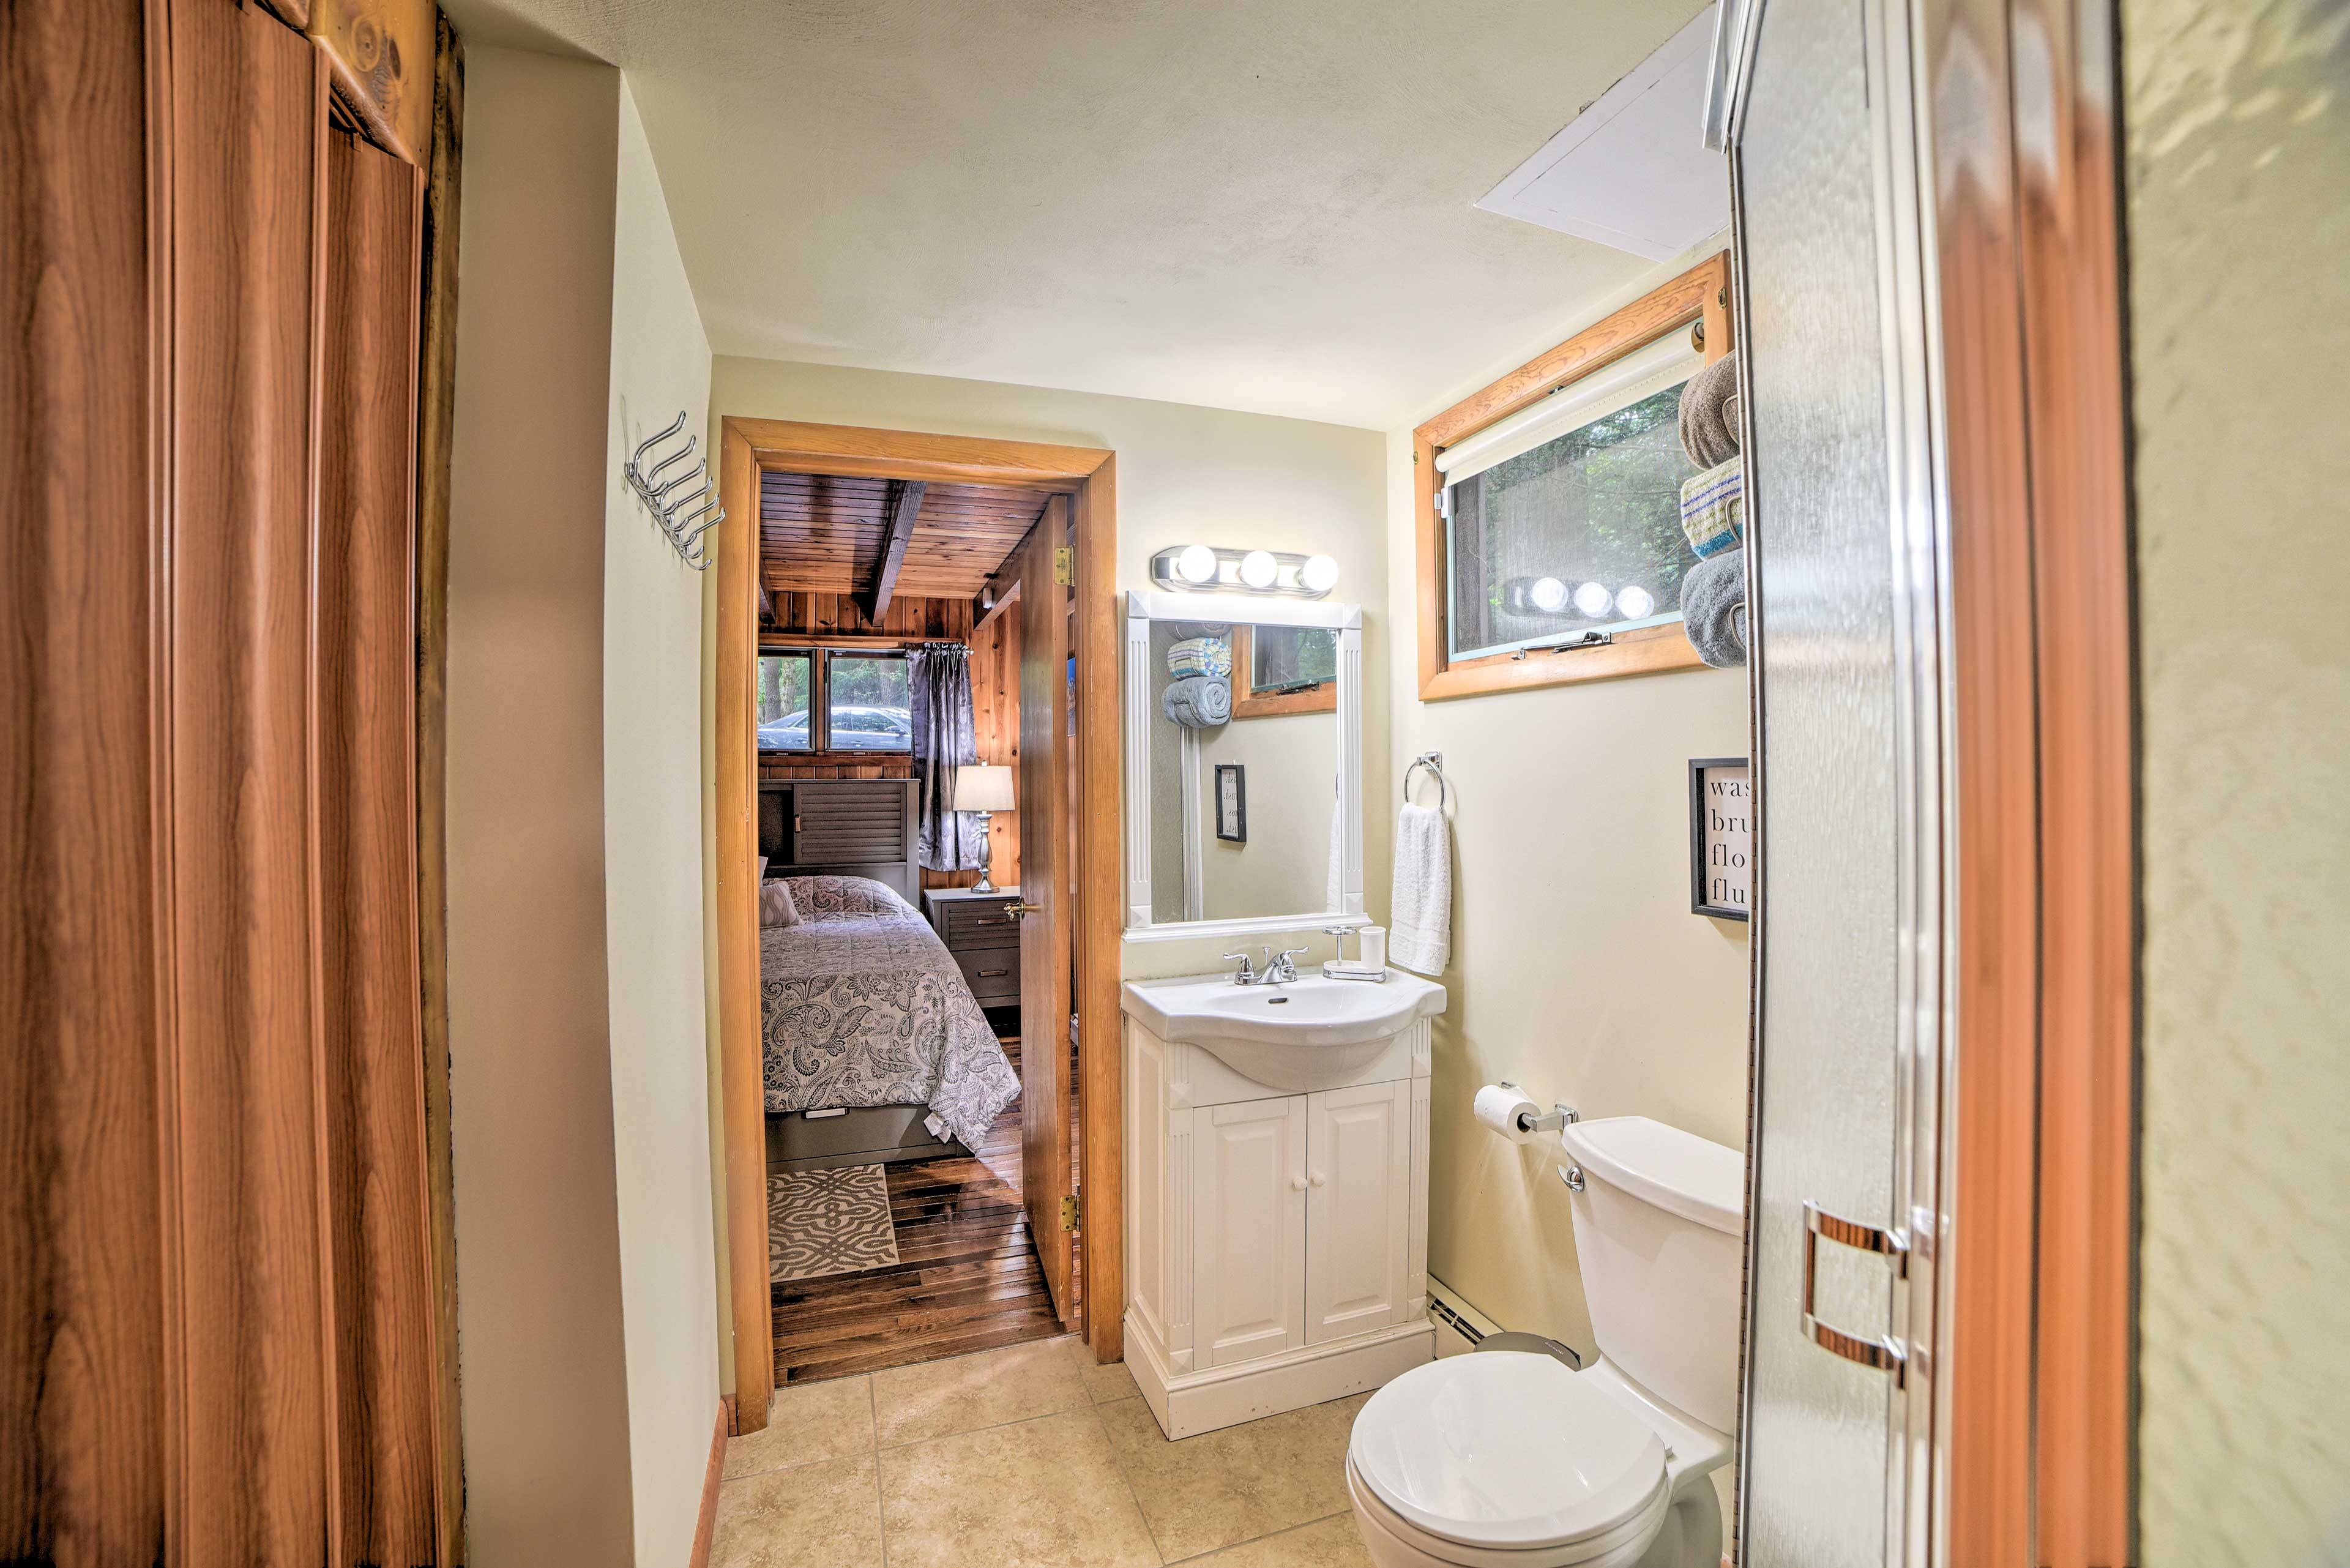 Connect right to the first bedroom from this bathroom.